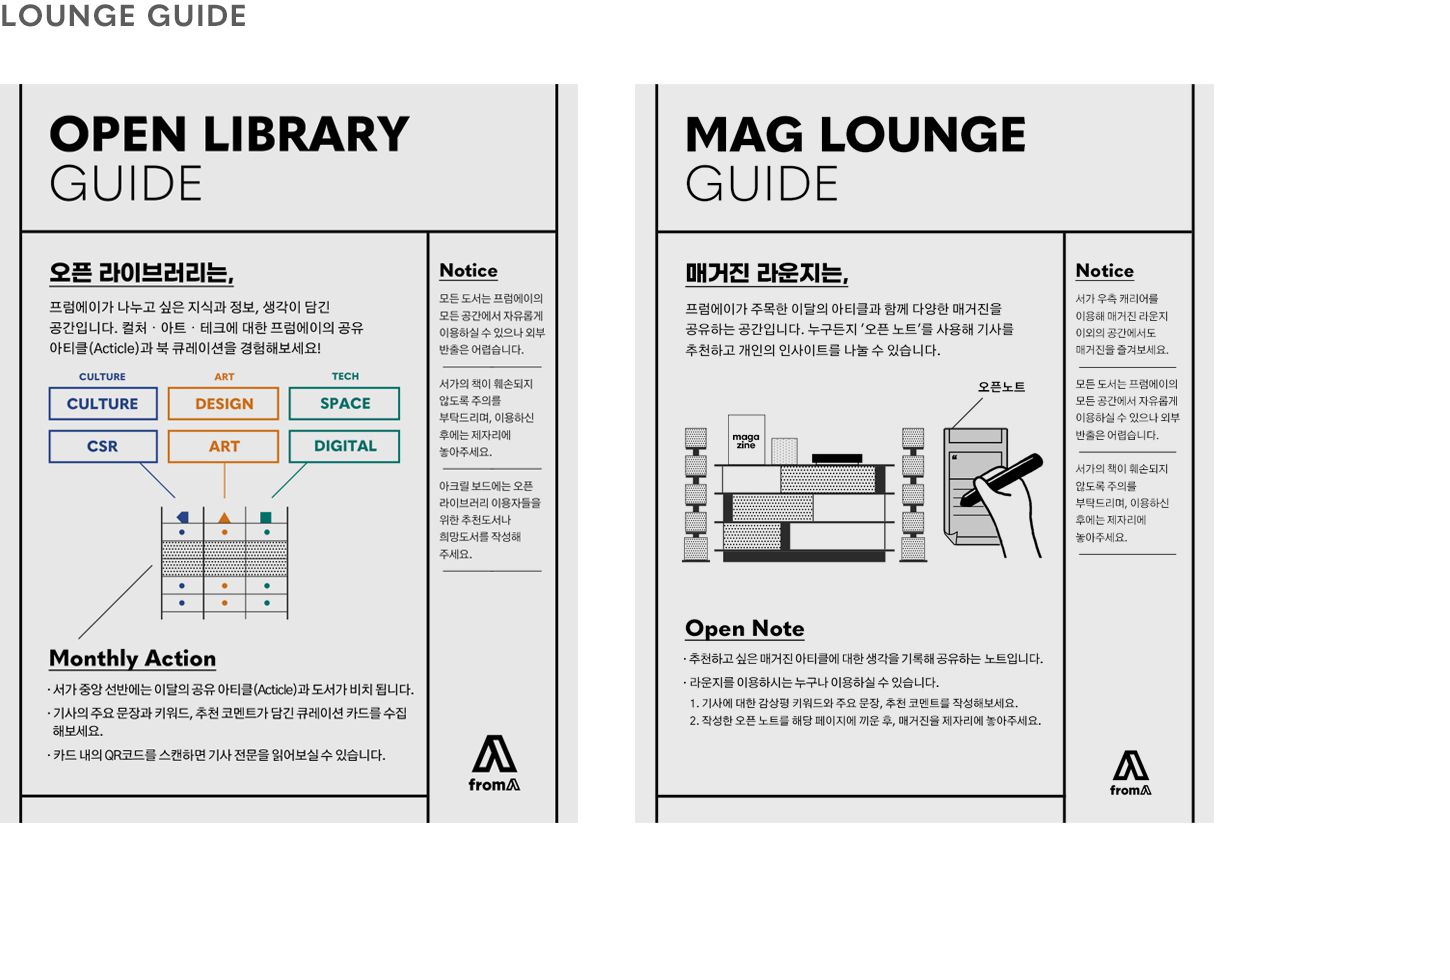 Lounge guide